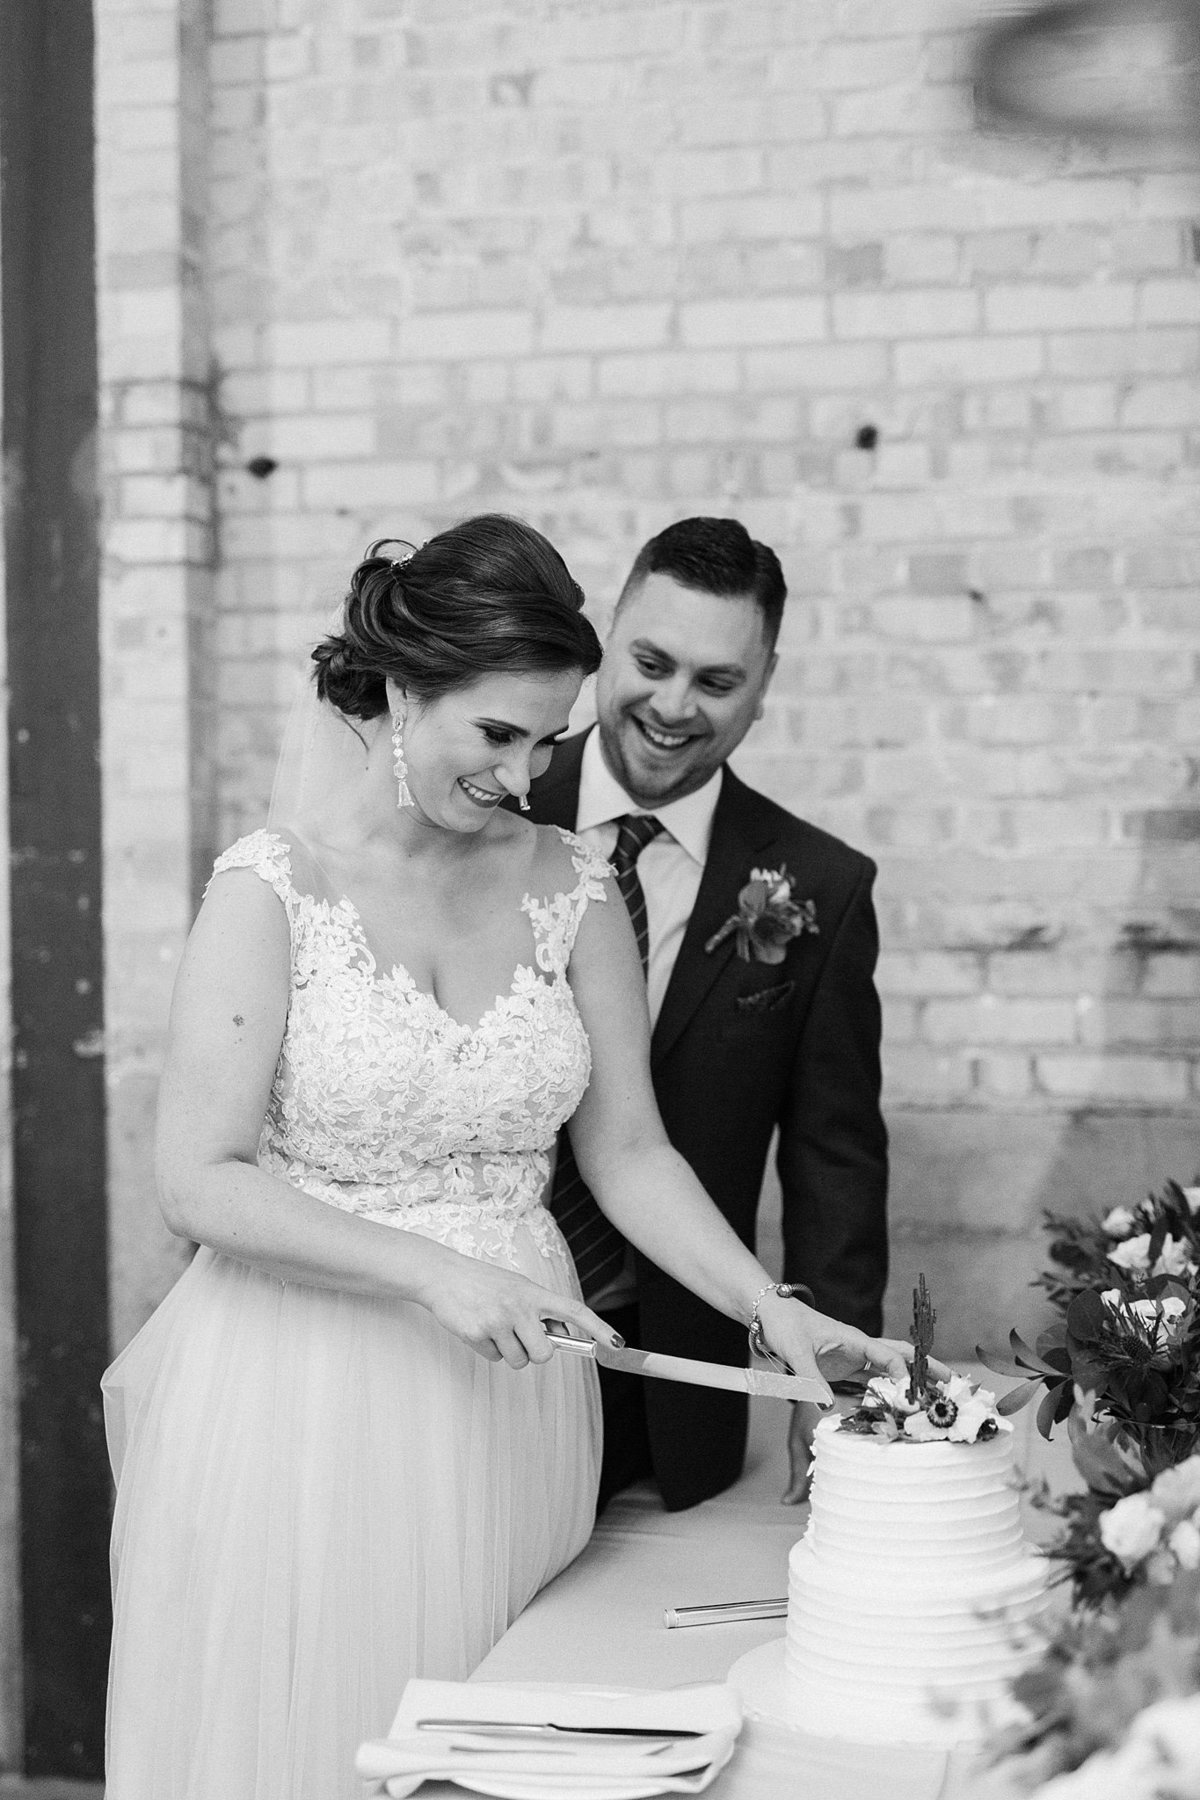 78-Loft-Wisconsin-Wedding-Photographers-Gather-on-Broadway-Loft-James-Stokes-Photography-